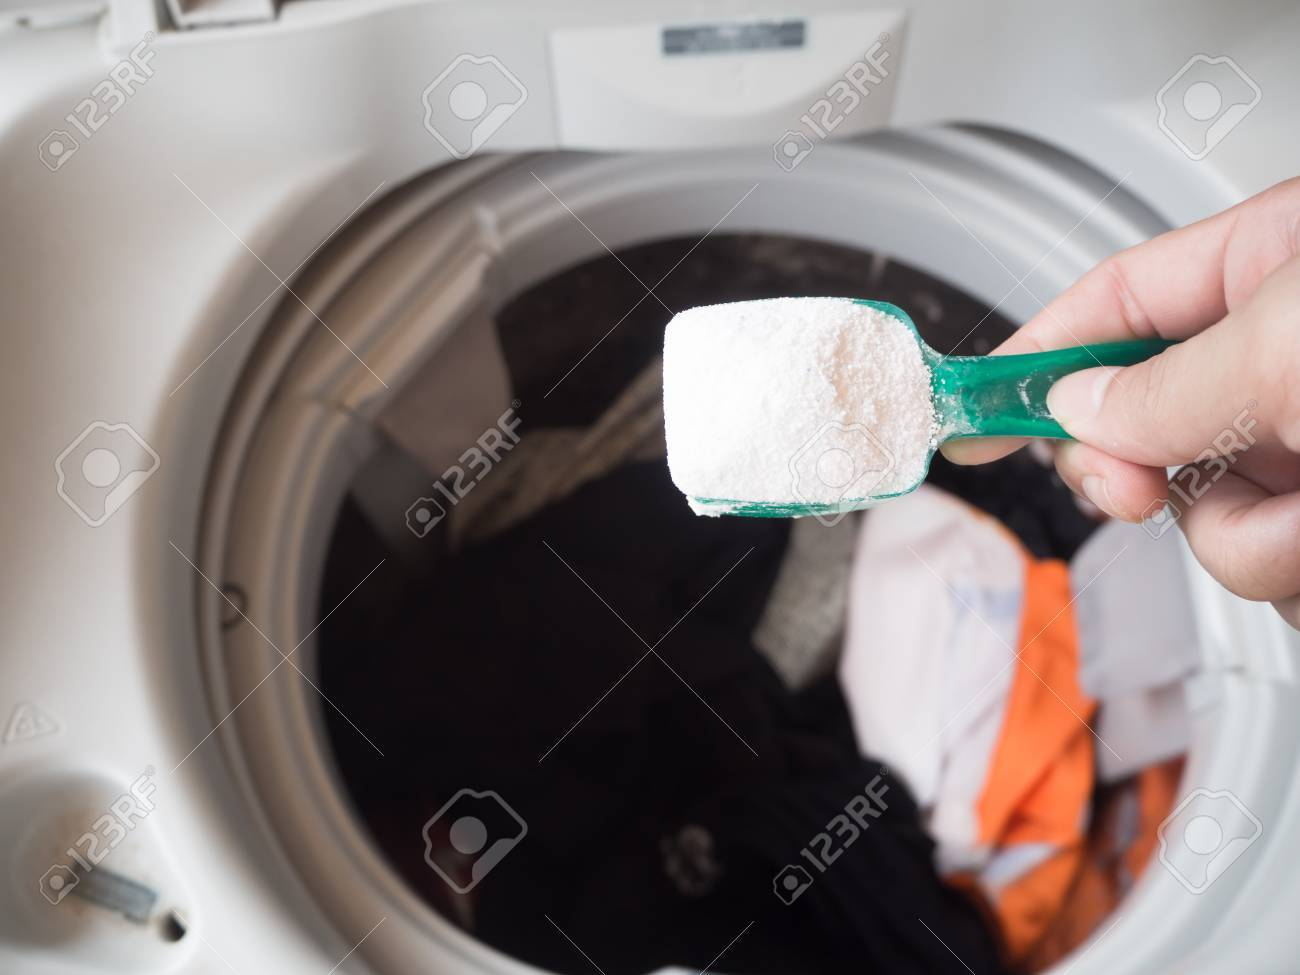 Pour Detergent Into Washing Machine Stock Photo